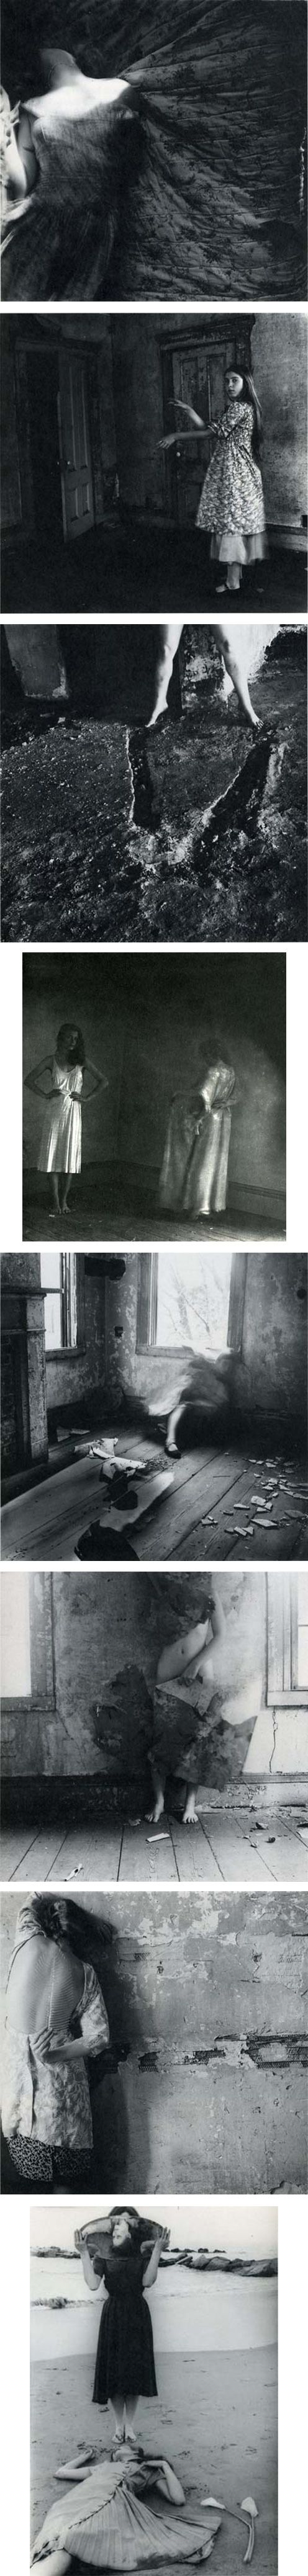 Francesca Woodman. Unfortunately, I have no idea if this is paint or photography, buts its beautiful.